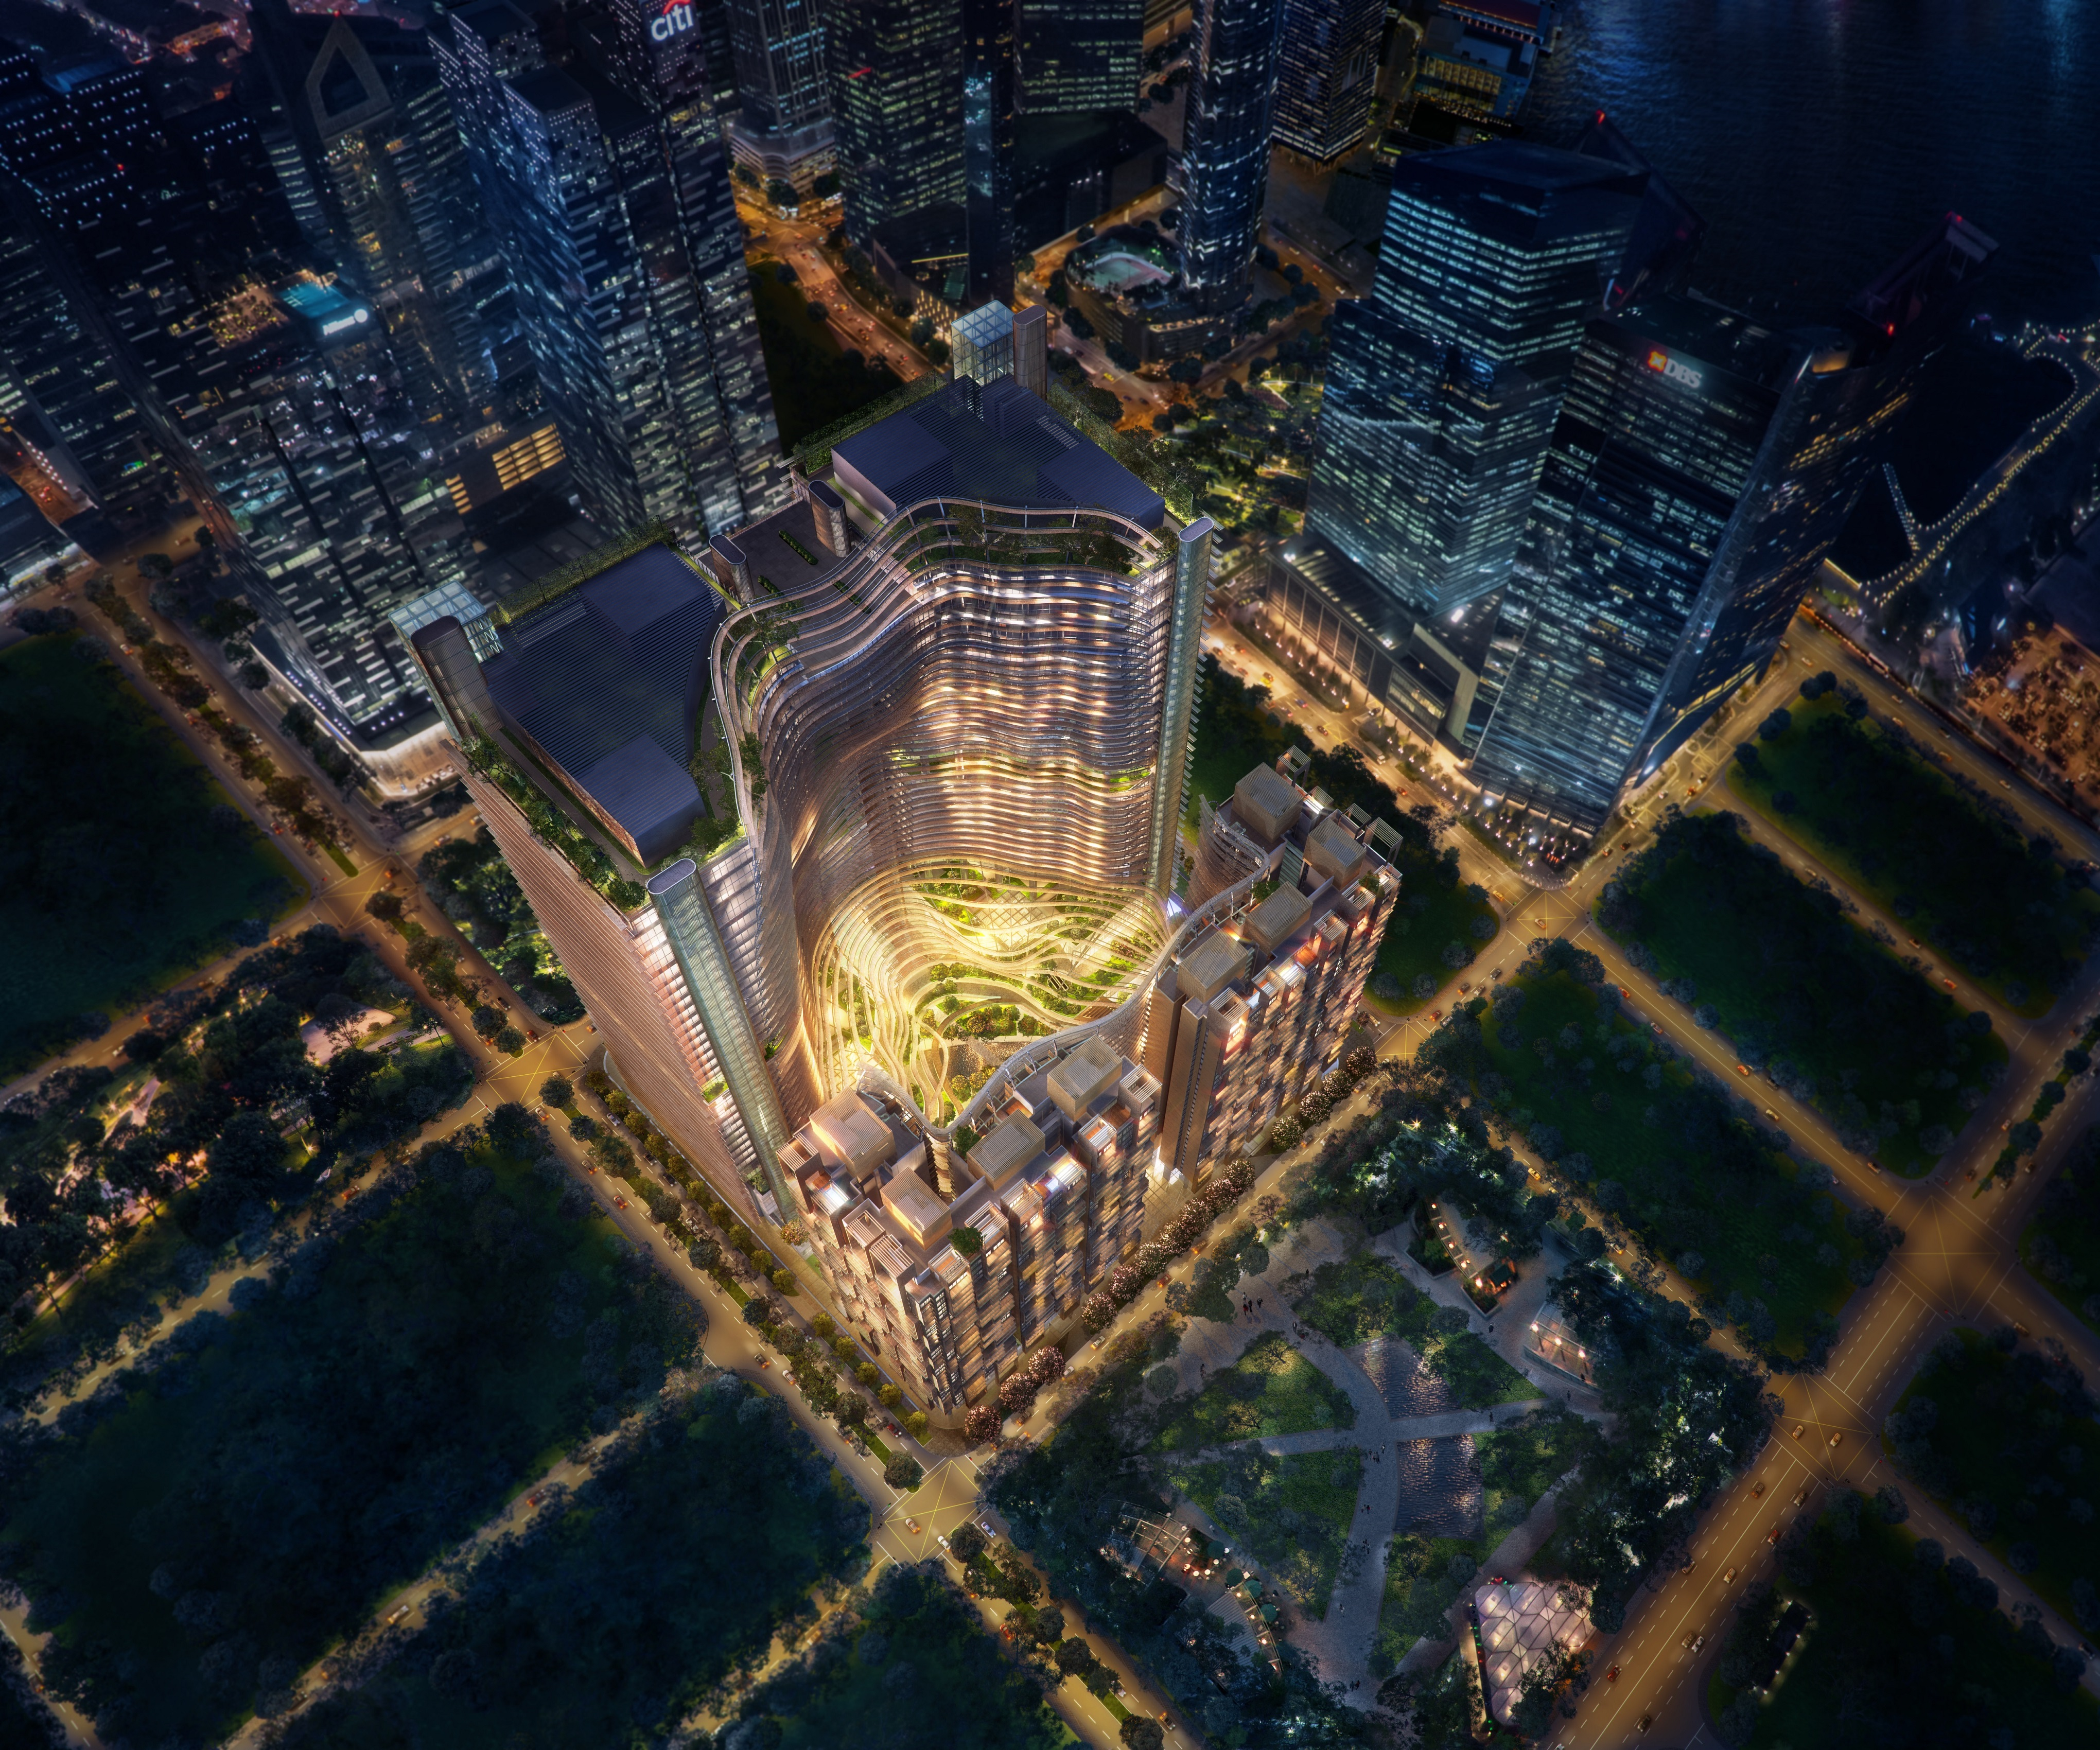 Marina One Residences was developed by M+S, a joint venture between Malaysia's Khazanah Nasional and Singapore's Temasek Holdings - EDGEPROP SINGAPORE